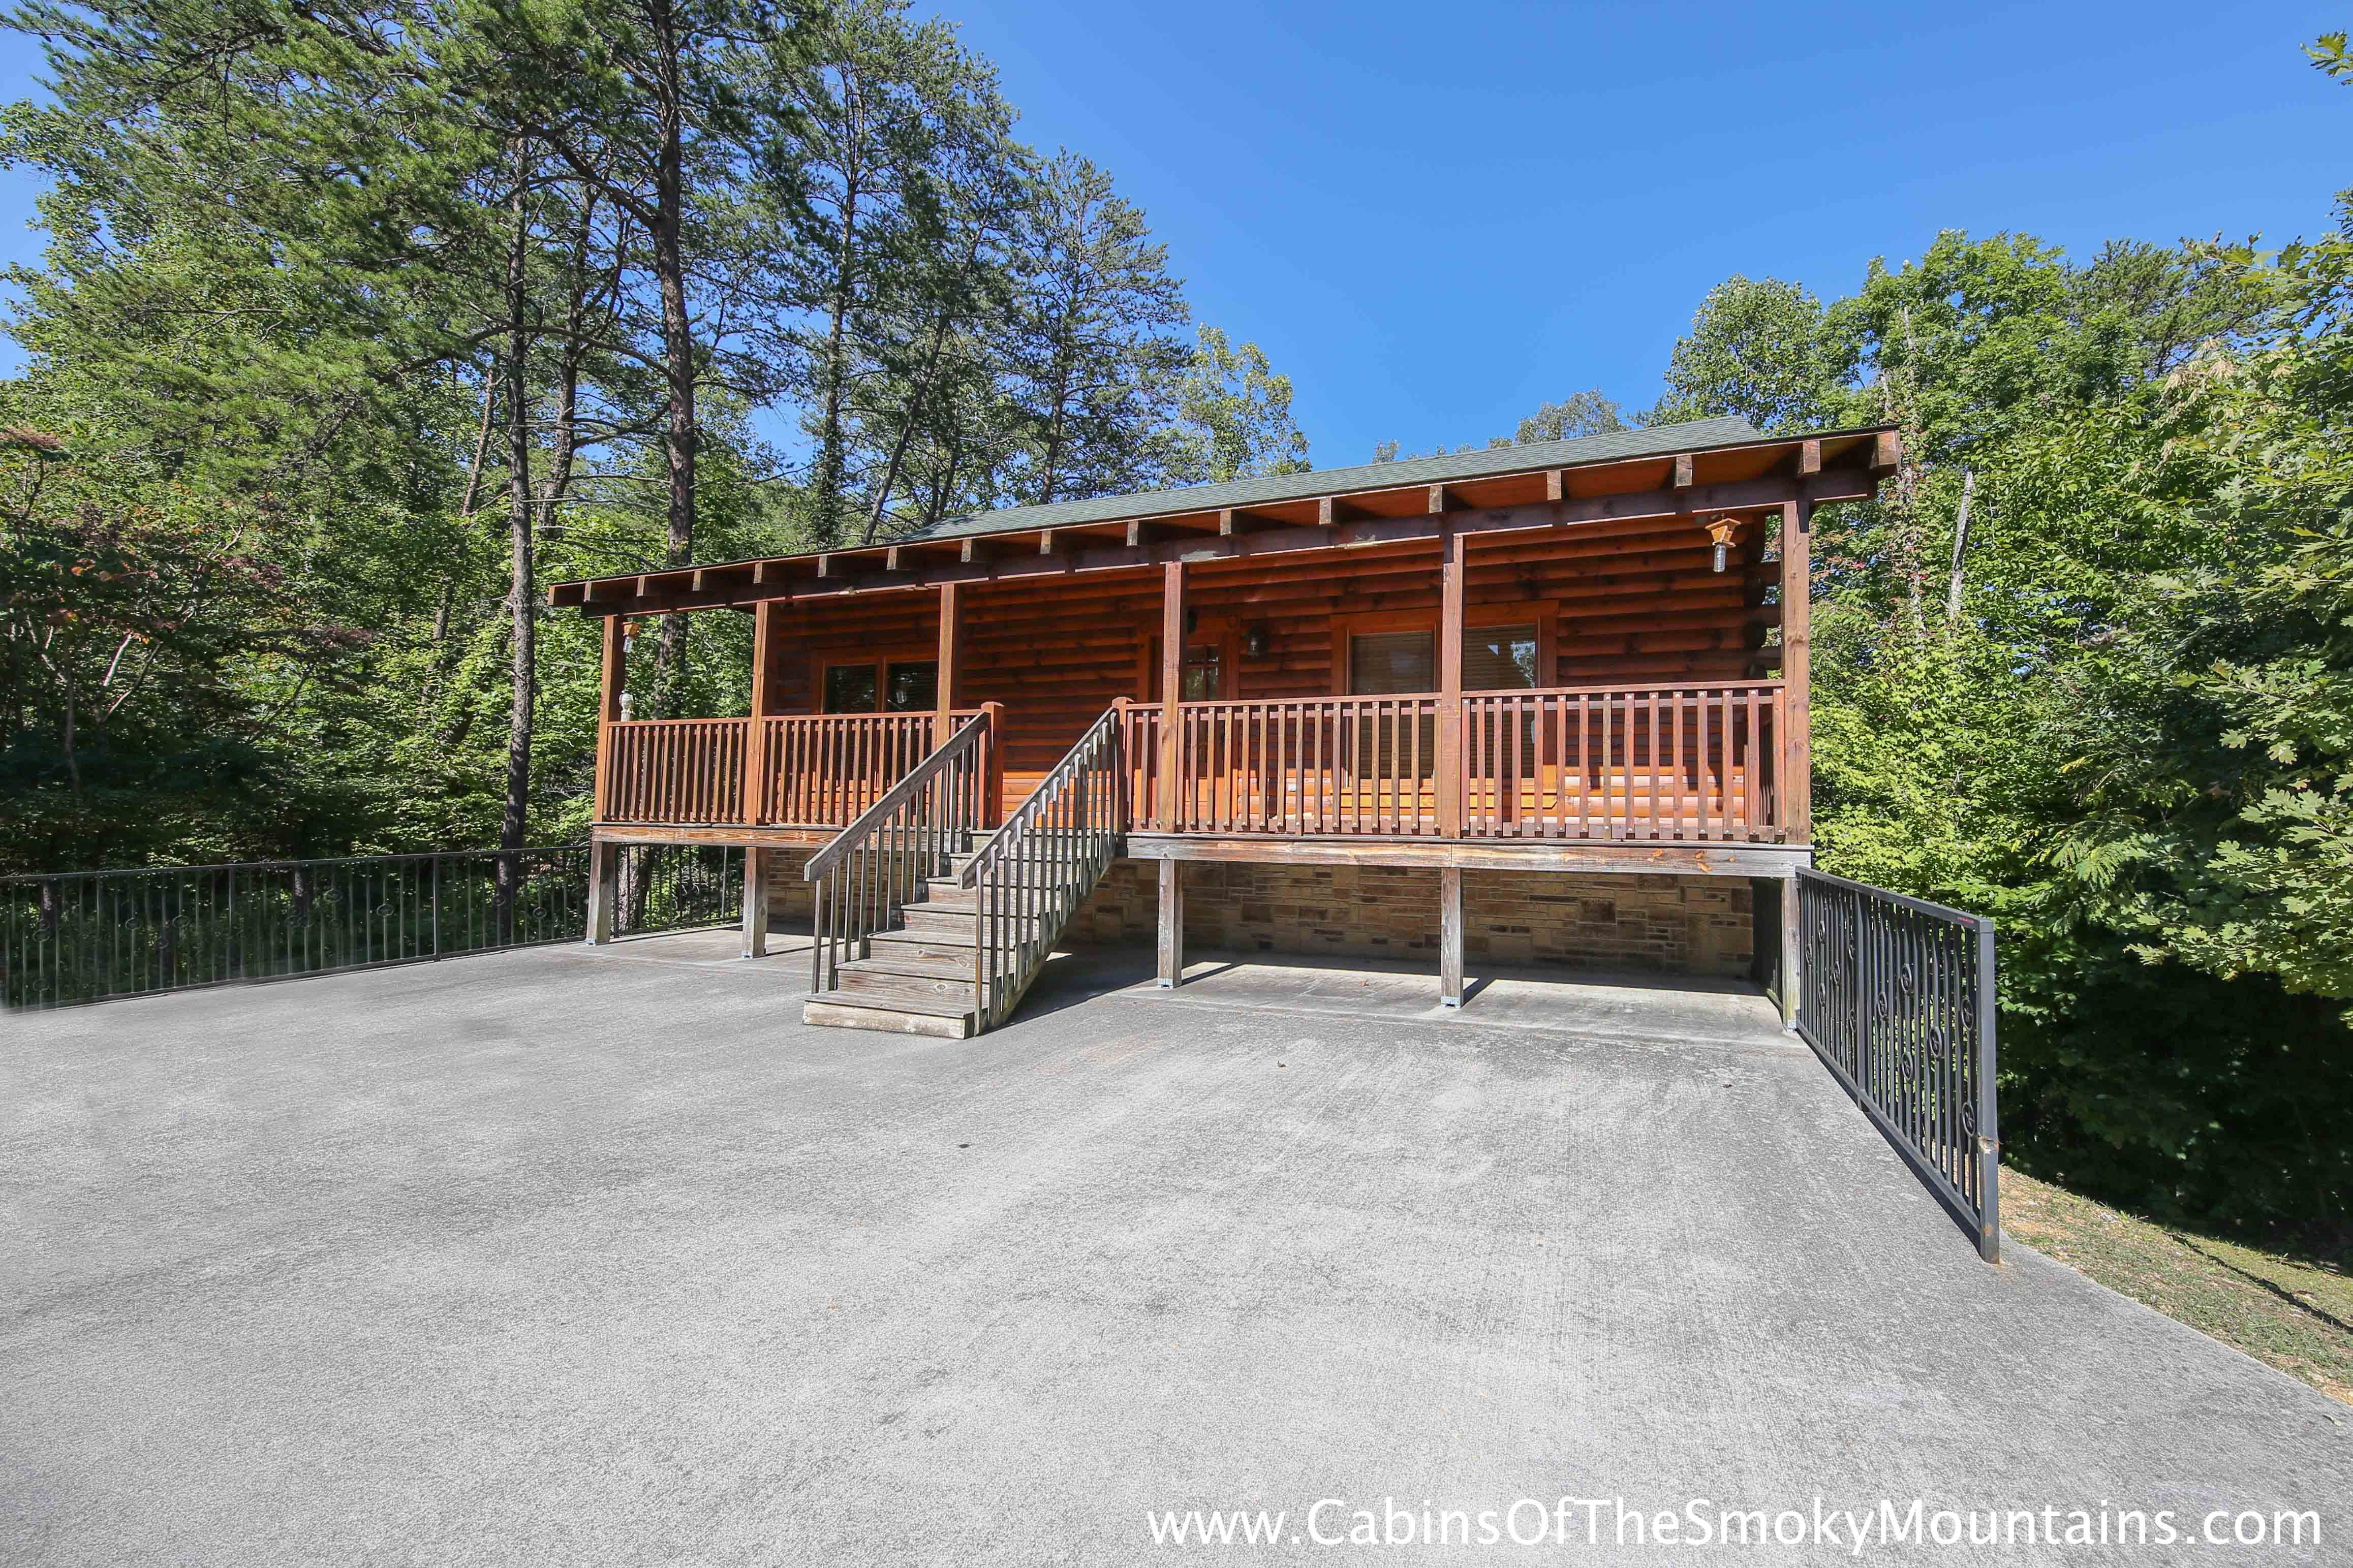 rentals a laurel gatlinburg bedroom mountain smokey cabins tn cottage cabin smoky tennessee in chalets